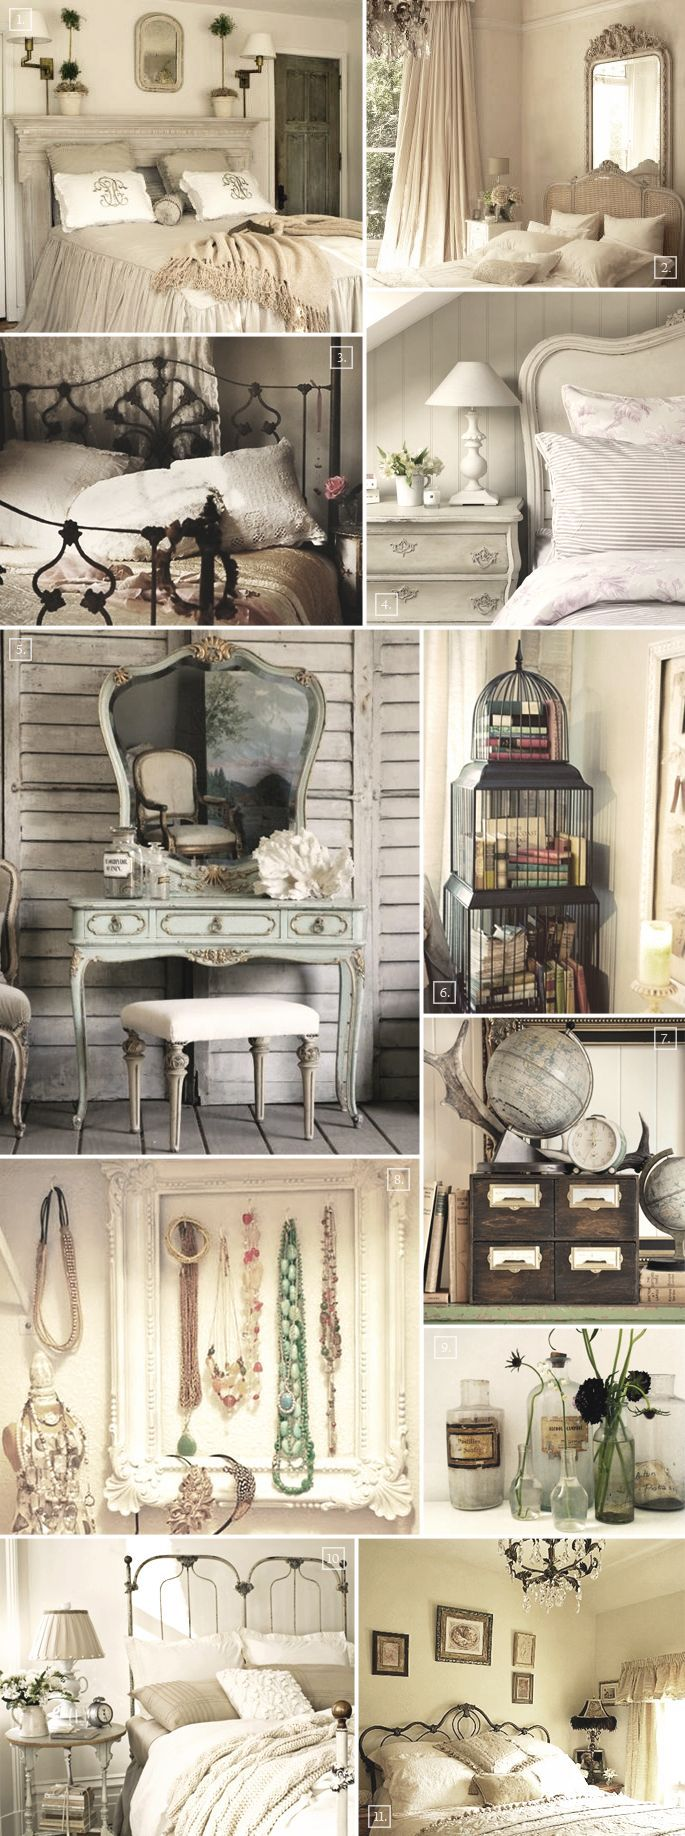 Gallery from Bedroom Decorating Ideas Vintage Style Trend 2020 @house2homegoods.net